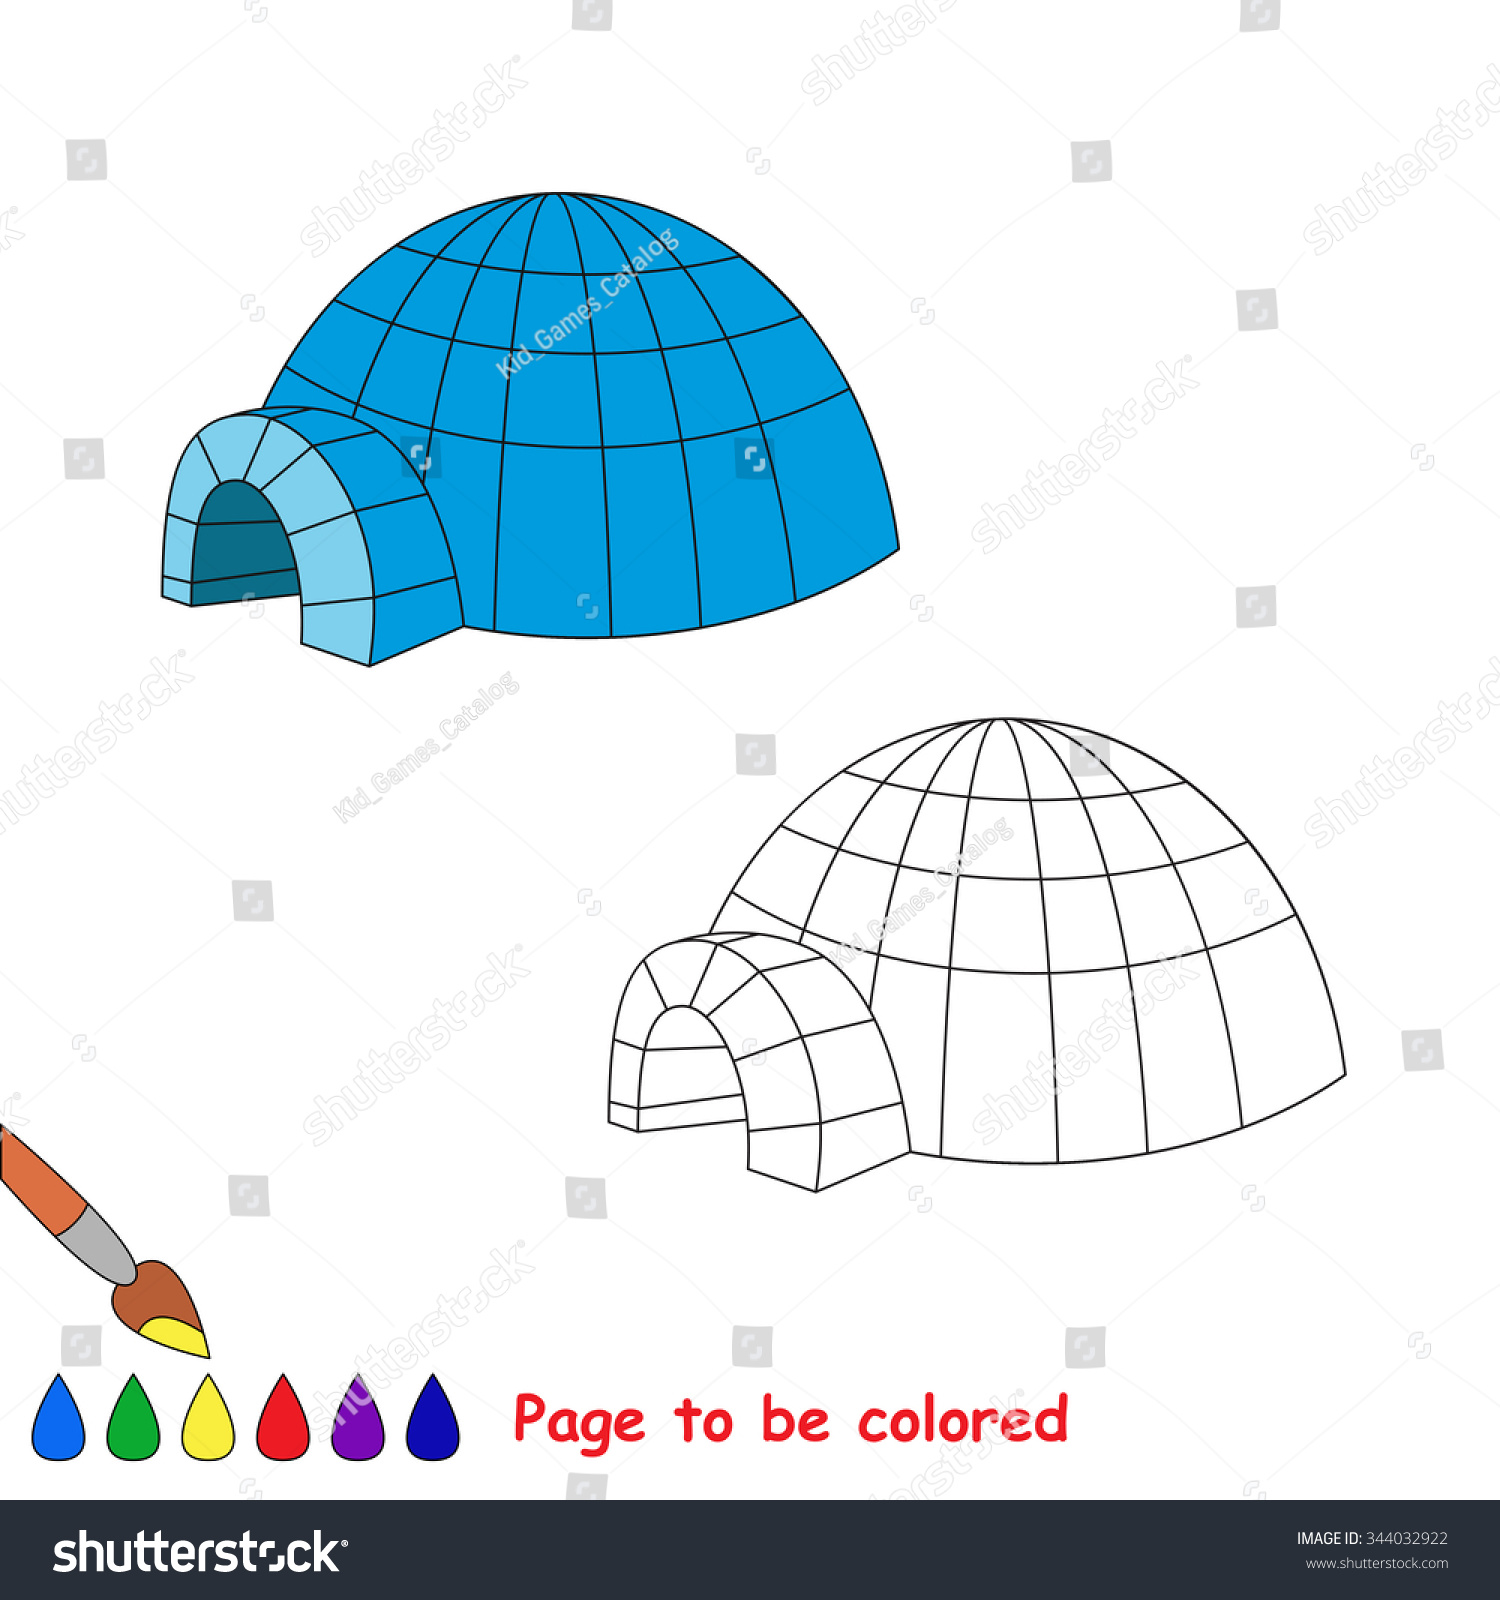 igloo vector cartoon to be colored - Igloo Pictures To Color